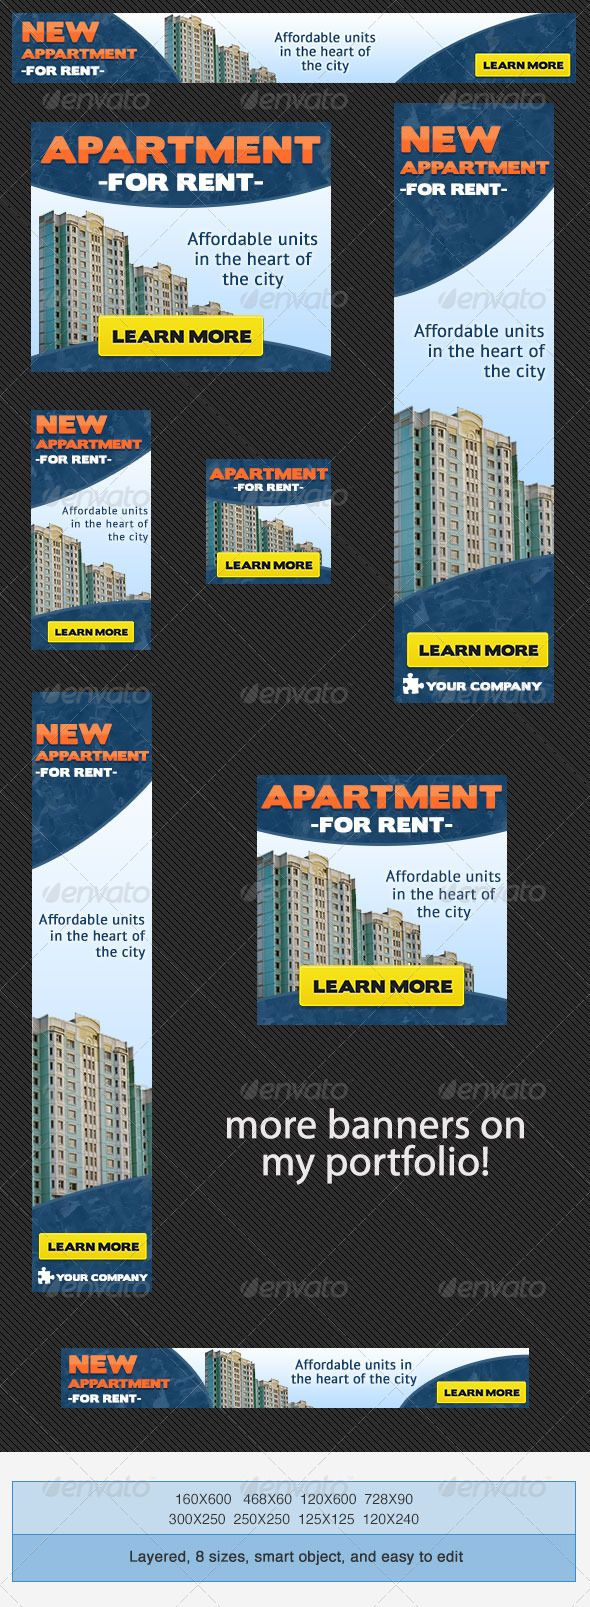 Real Estate Apartment Banner Ad Pinterest Web Advertisement - For rent advertisement template